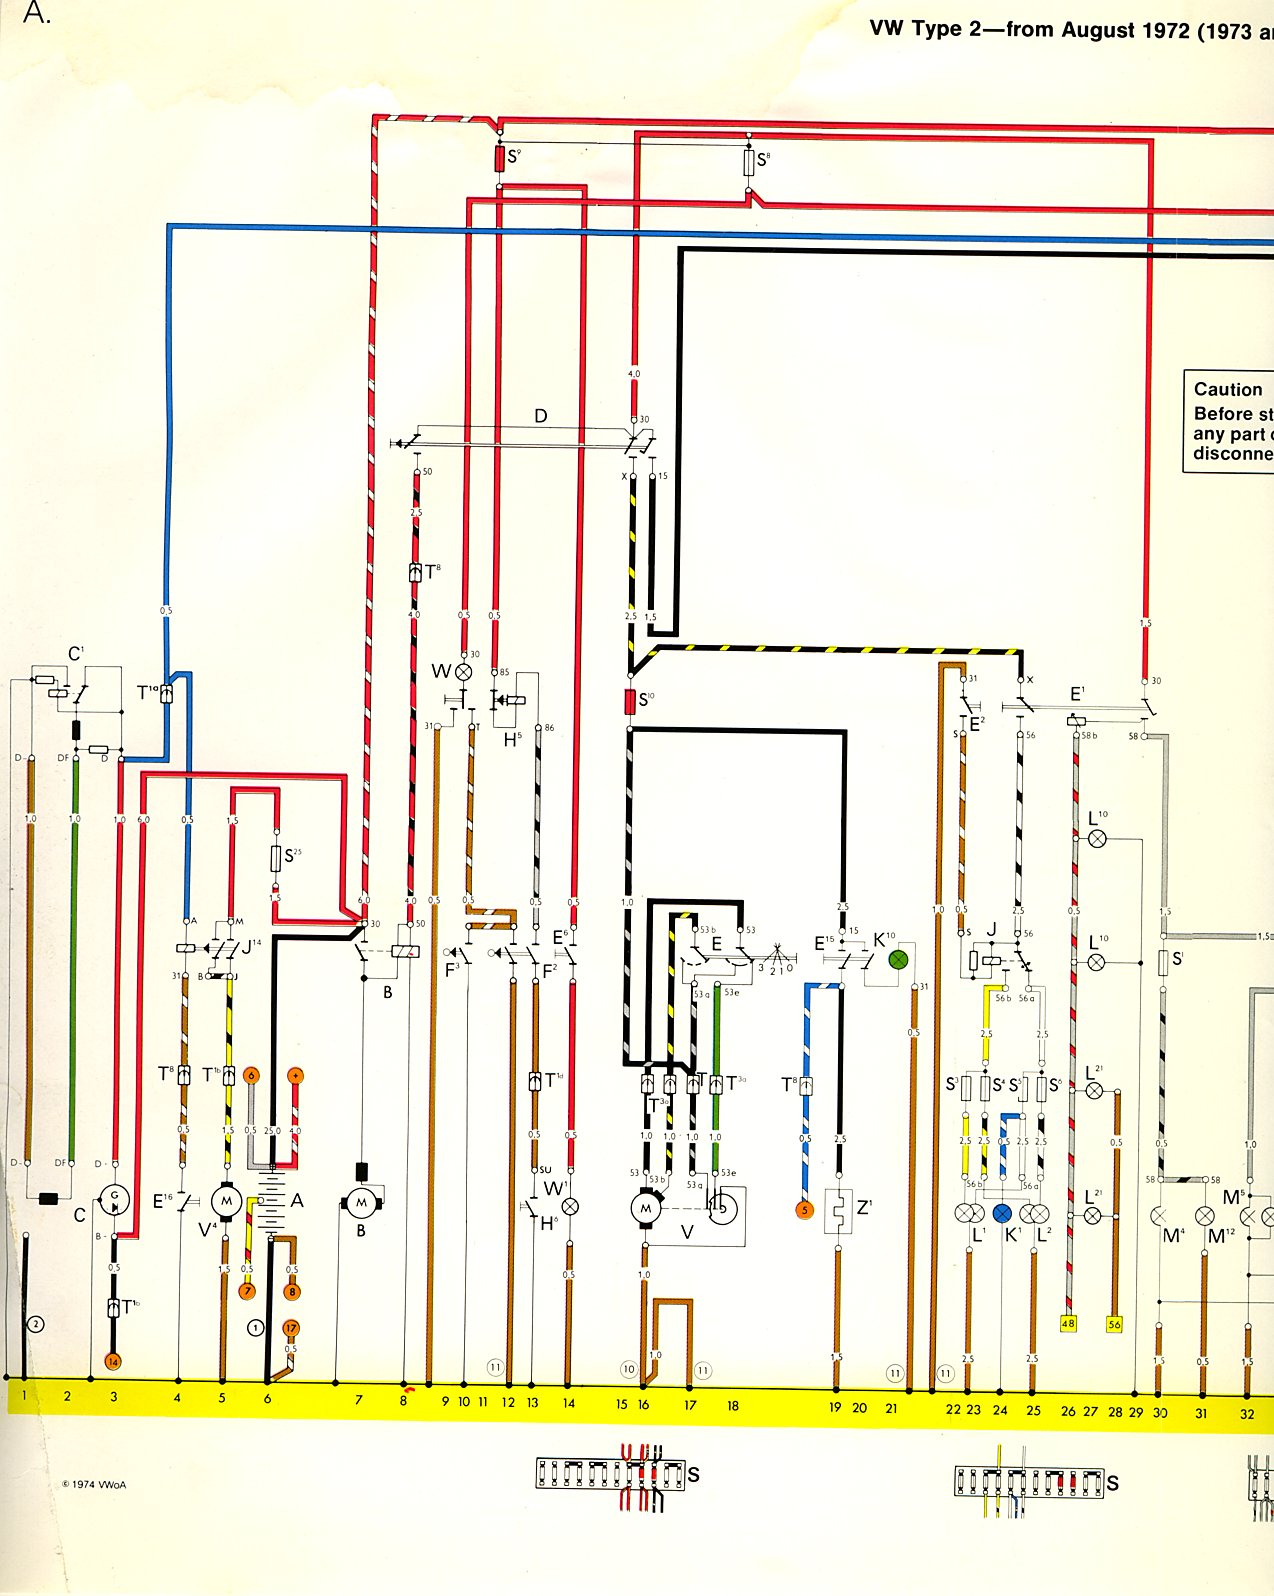 baybus_7374a 1973 74 bus wiring diagram thegoldenbug com 74 vw bus wiring diagram at nearapp.co